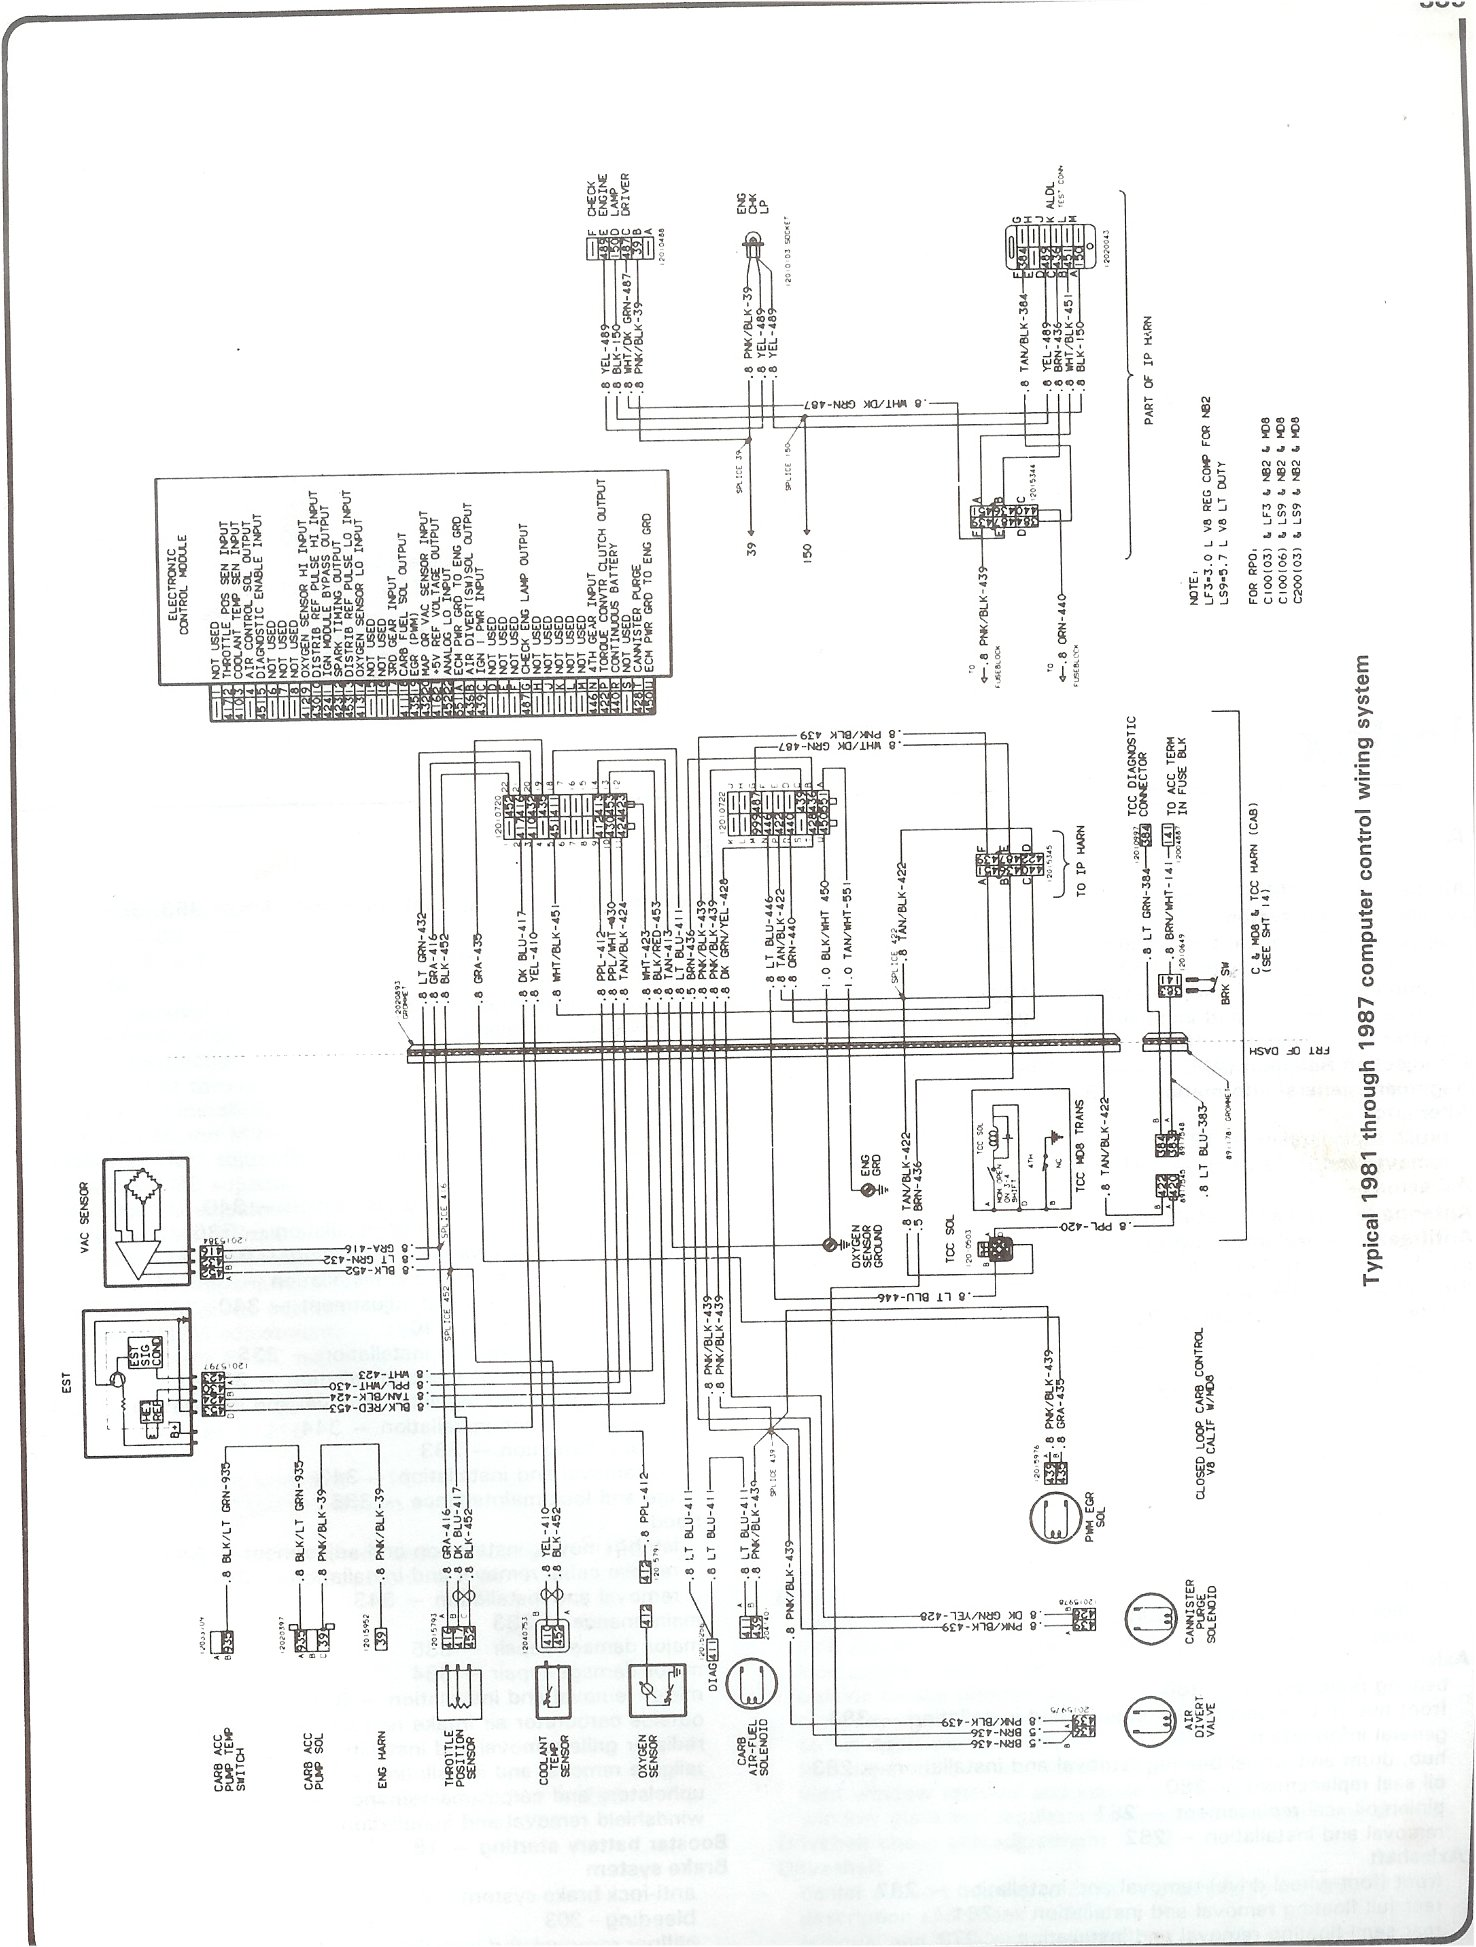 81 87_computer_control_wiring 86 chevy truck wiring harness on 86 download wirning diagrams Chevy Engine Wiring Harness at nearapp.co